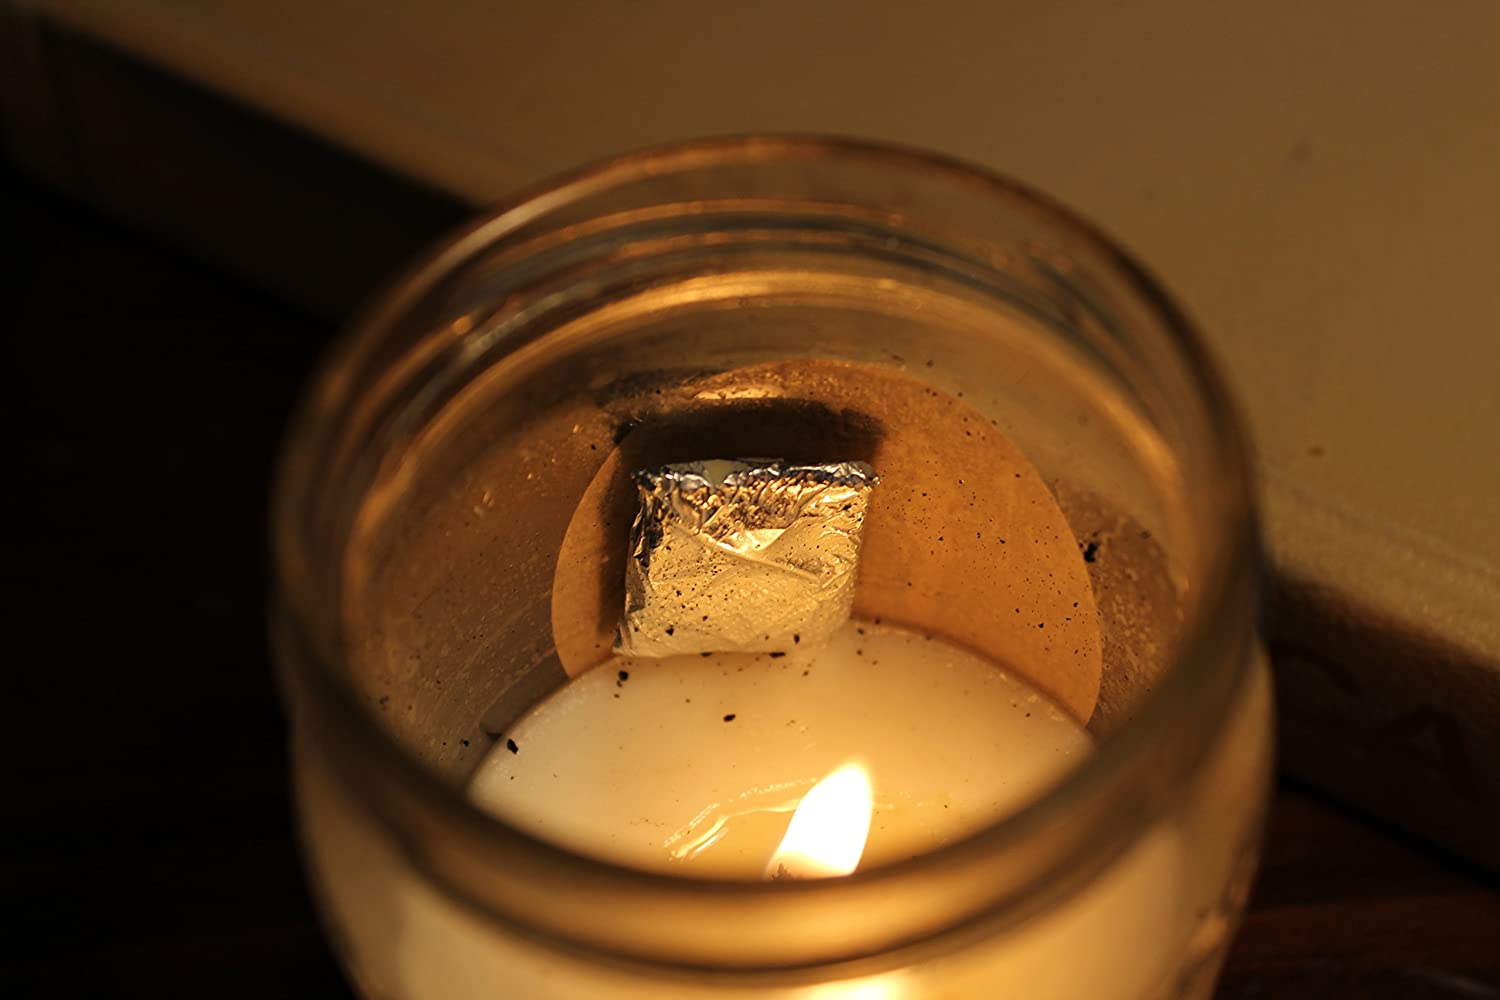 Soy Candle with A Gemstone Inside Surprise Semi-Precious Faceted Gemstone Valued $10-$5,000 Almost Paradise